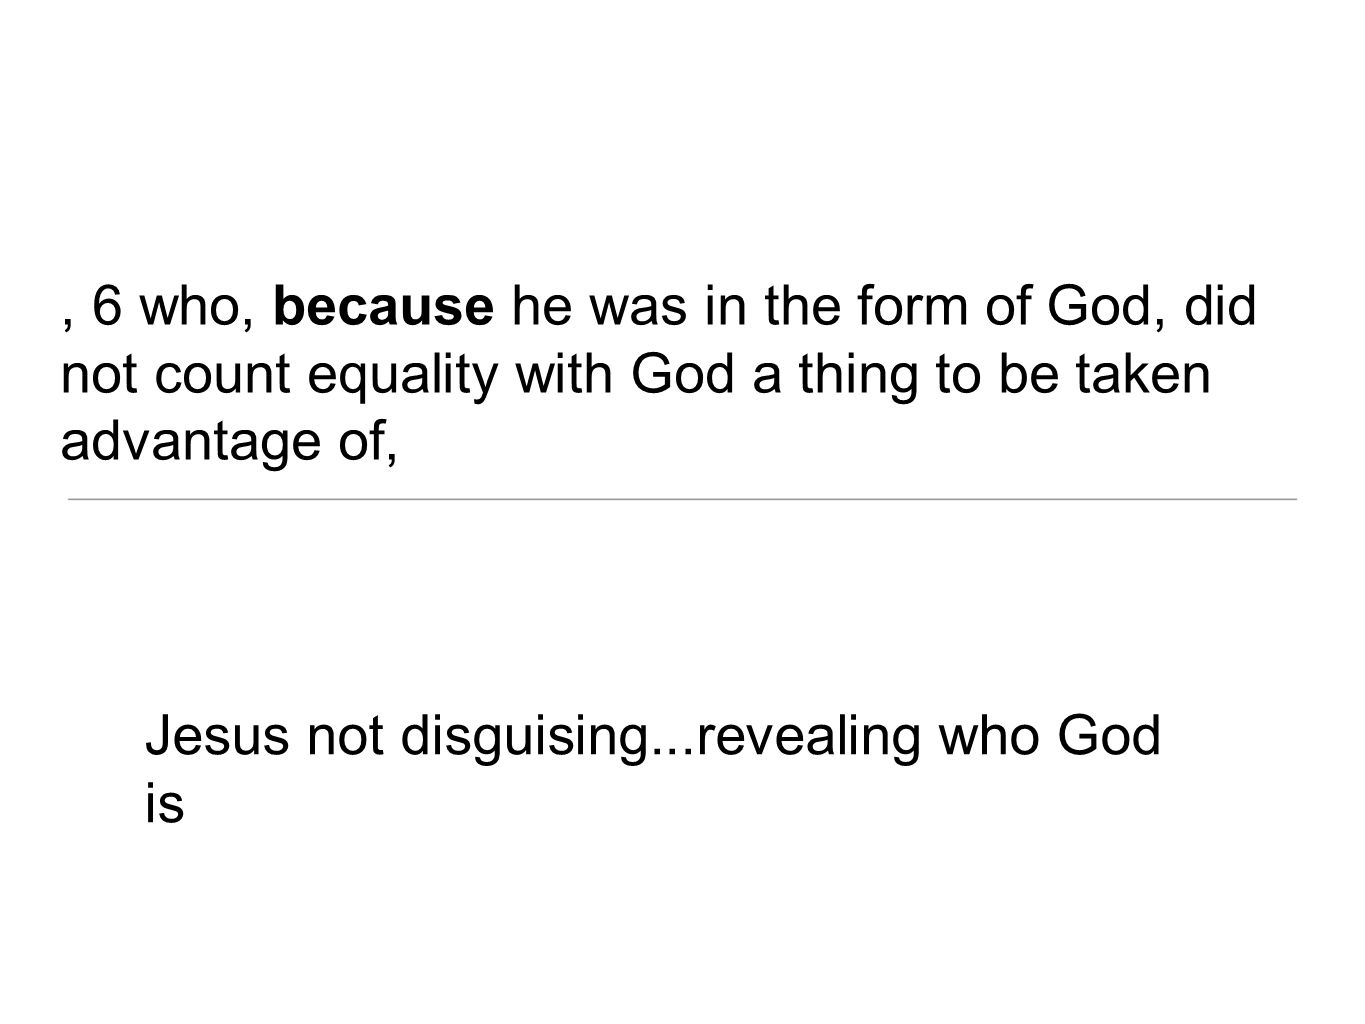 Jesus not disguising...revealing who God is